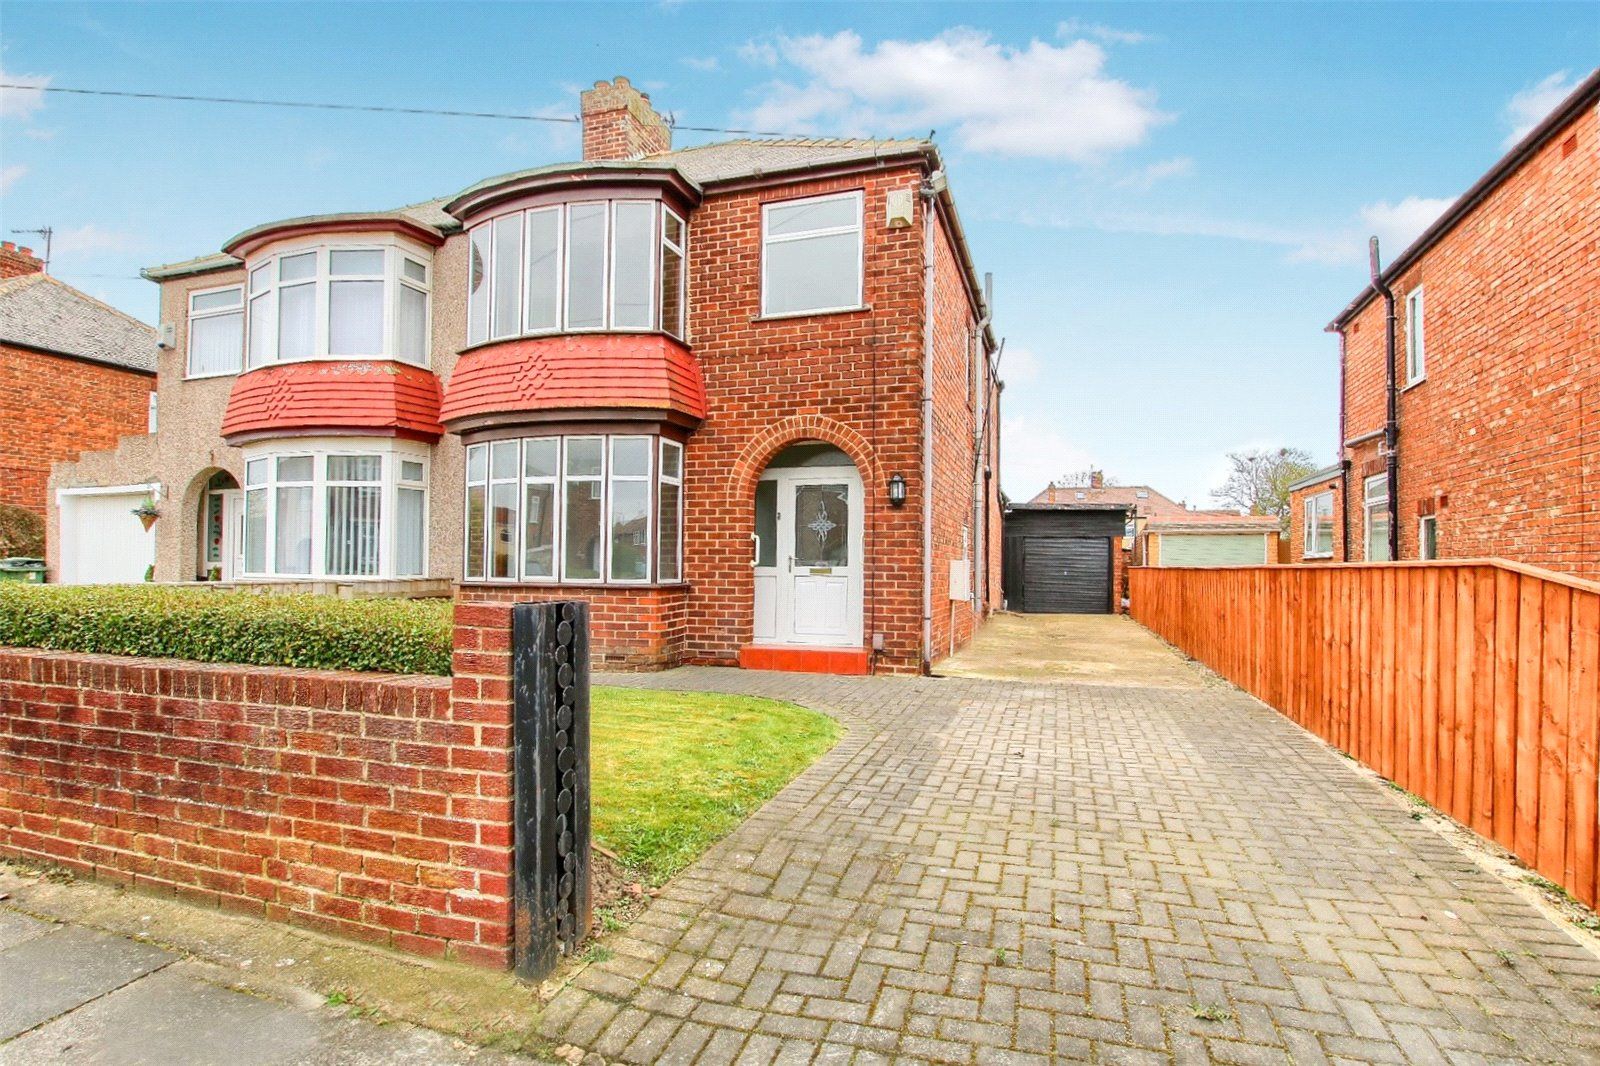 3 bed house for sale in Thames Avenue, Thornaby 1